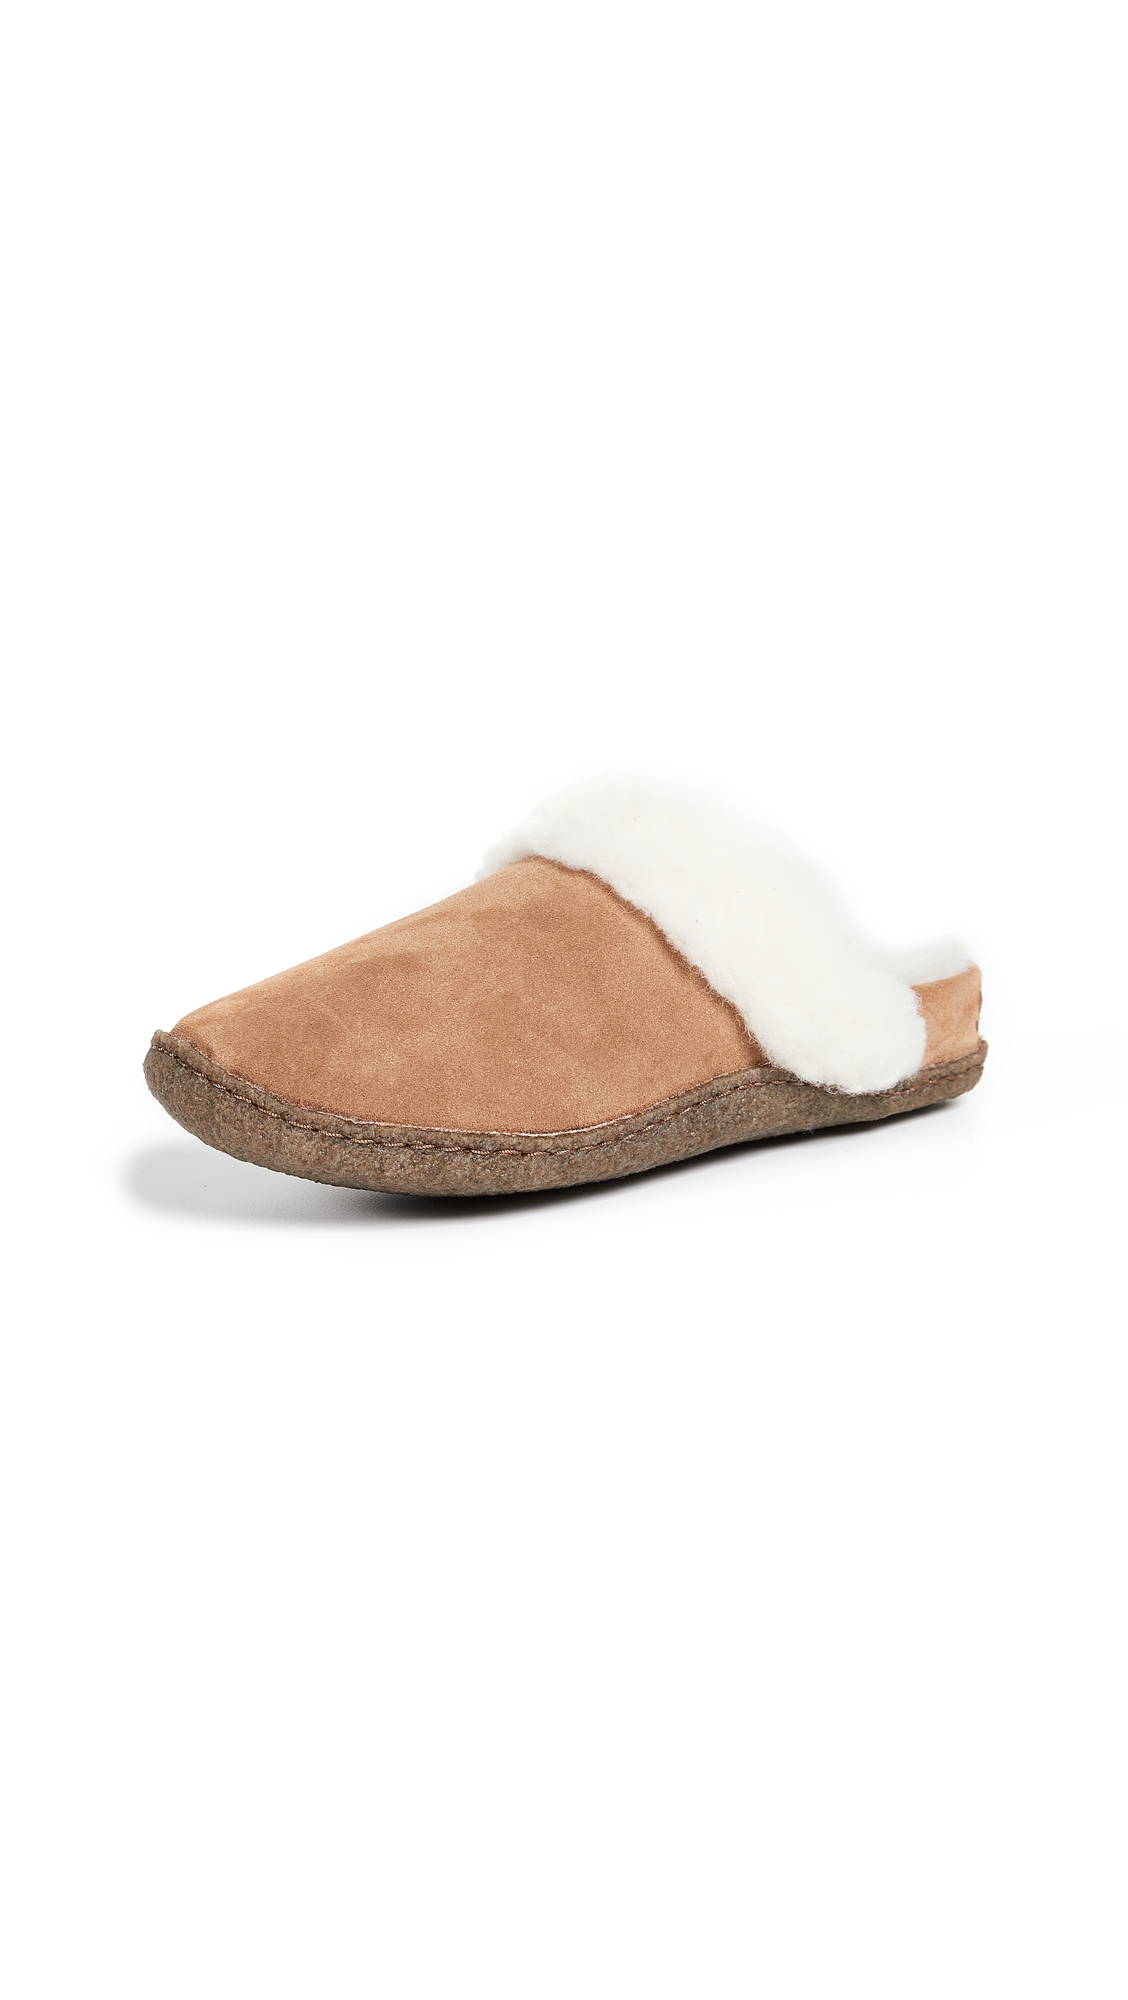 Sorel Nakiska Slide II Slippers - Camel Brown/Natural